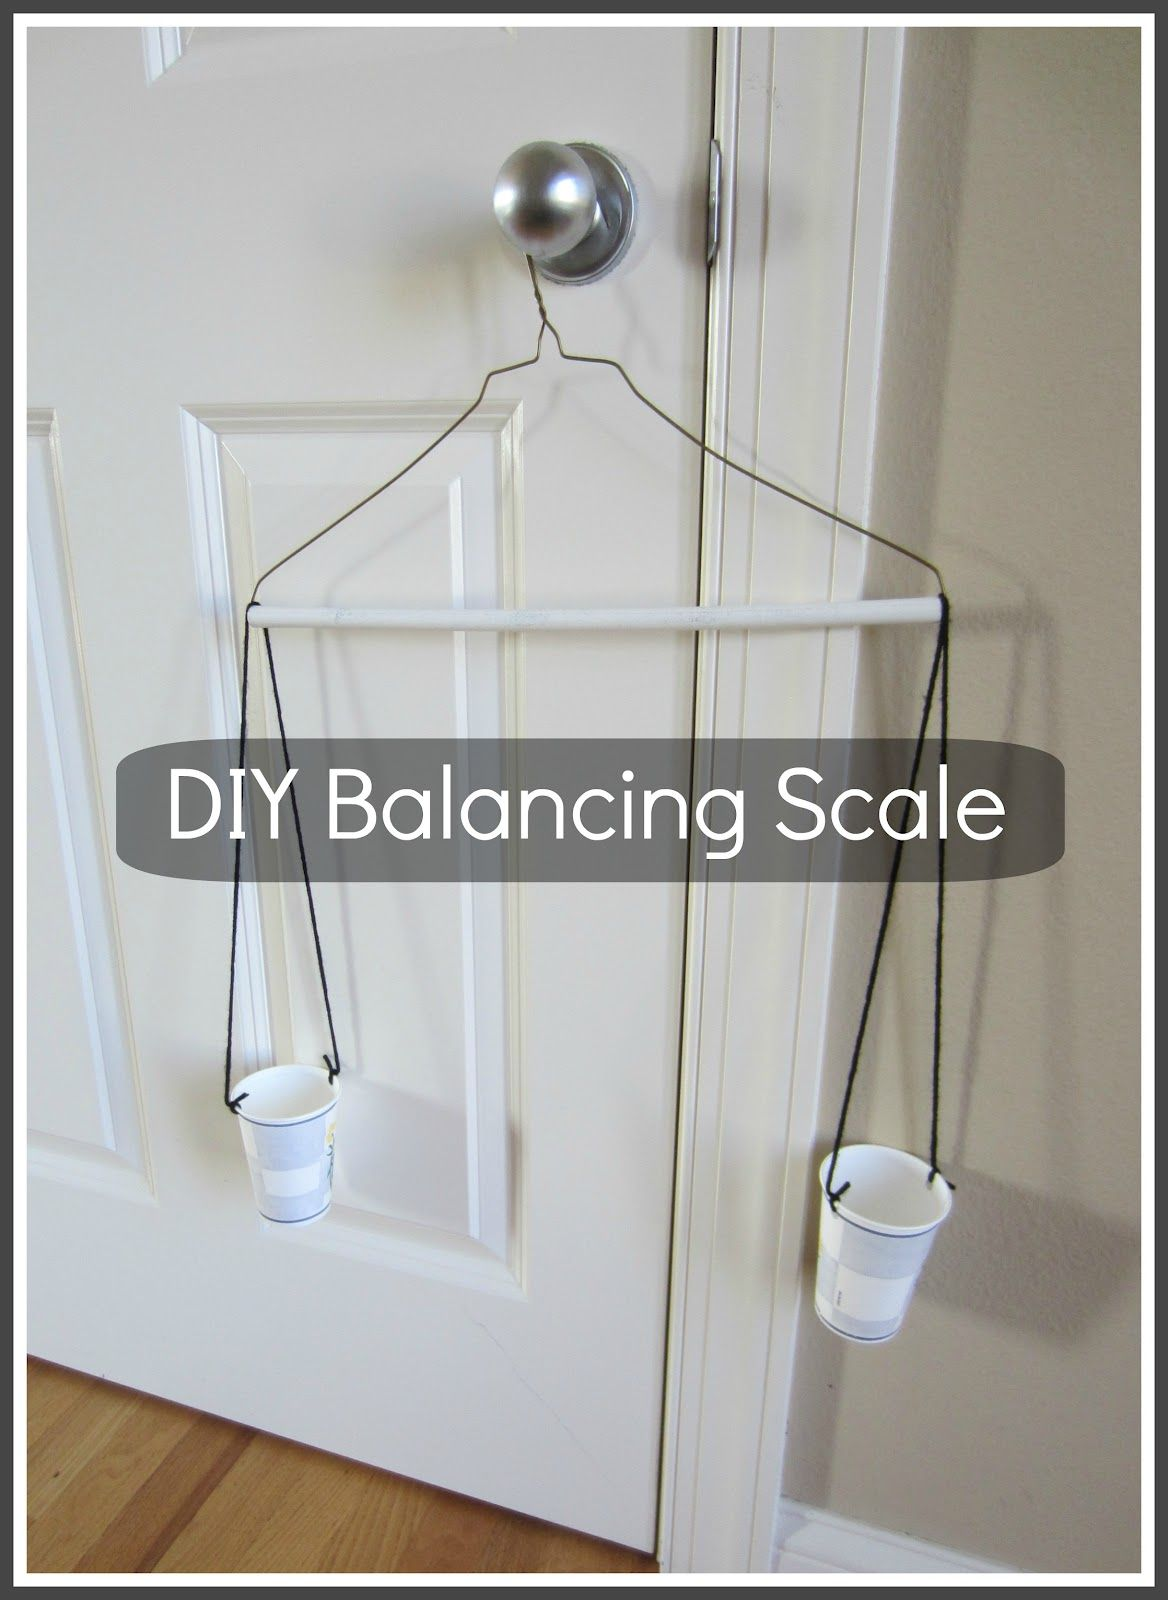 Relentlessly Fun Deceptively Educational Diy Balancing